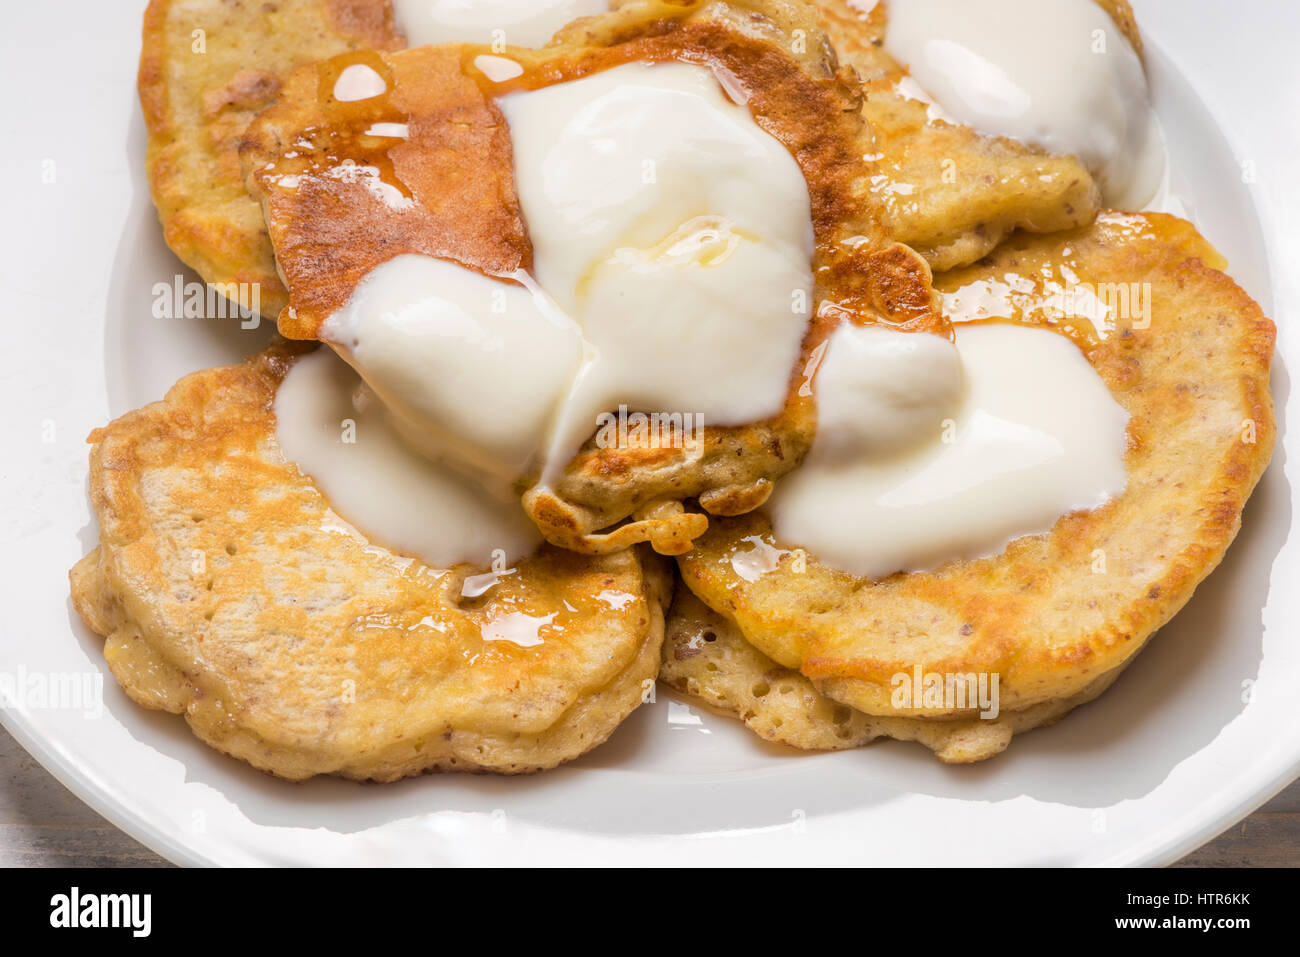 small individual scotch pancakes served on a white plate with yoghurt and honey - Stock Image